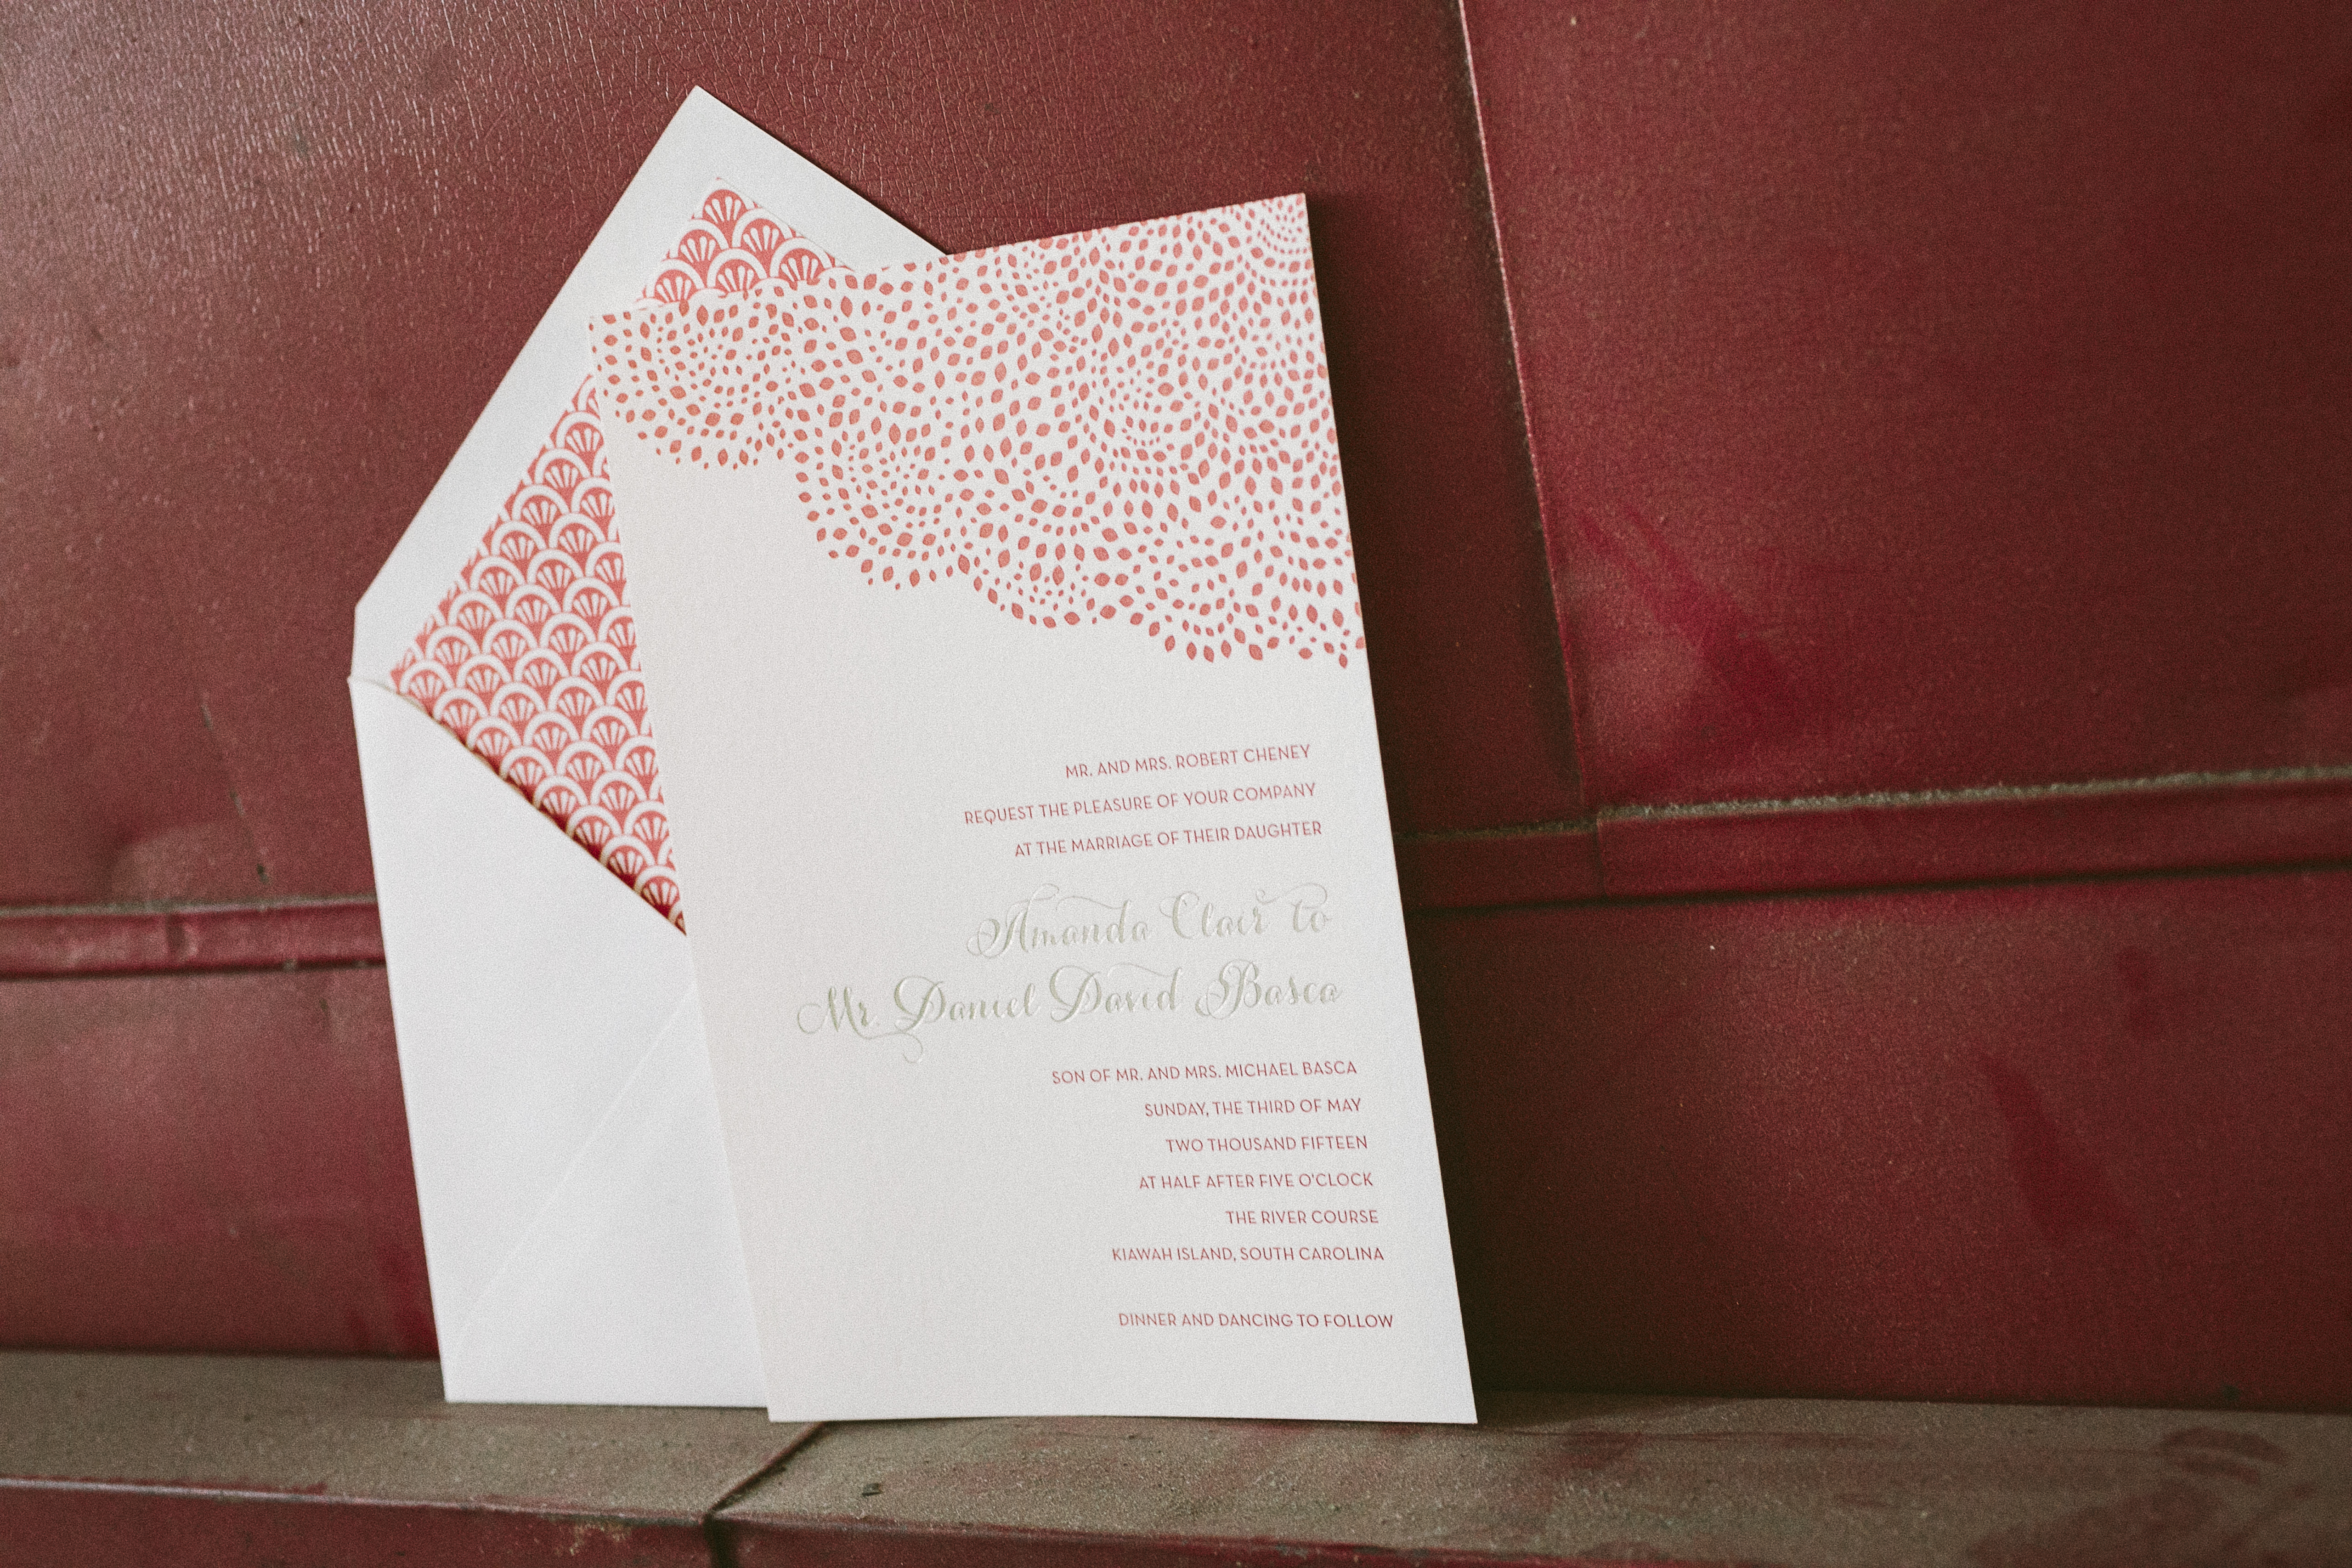 Letterpress wedding invitations and rehearsal dinner invitations by Smock